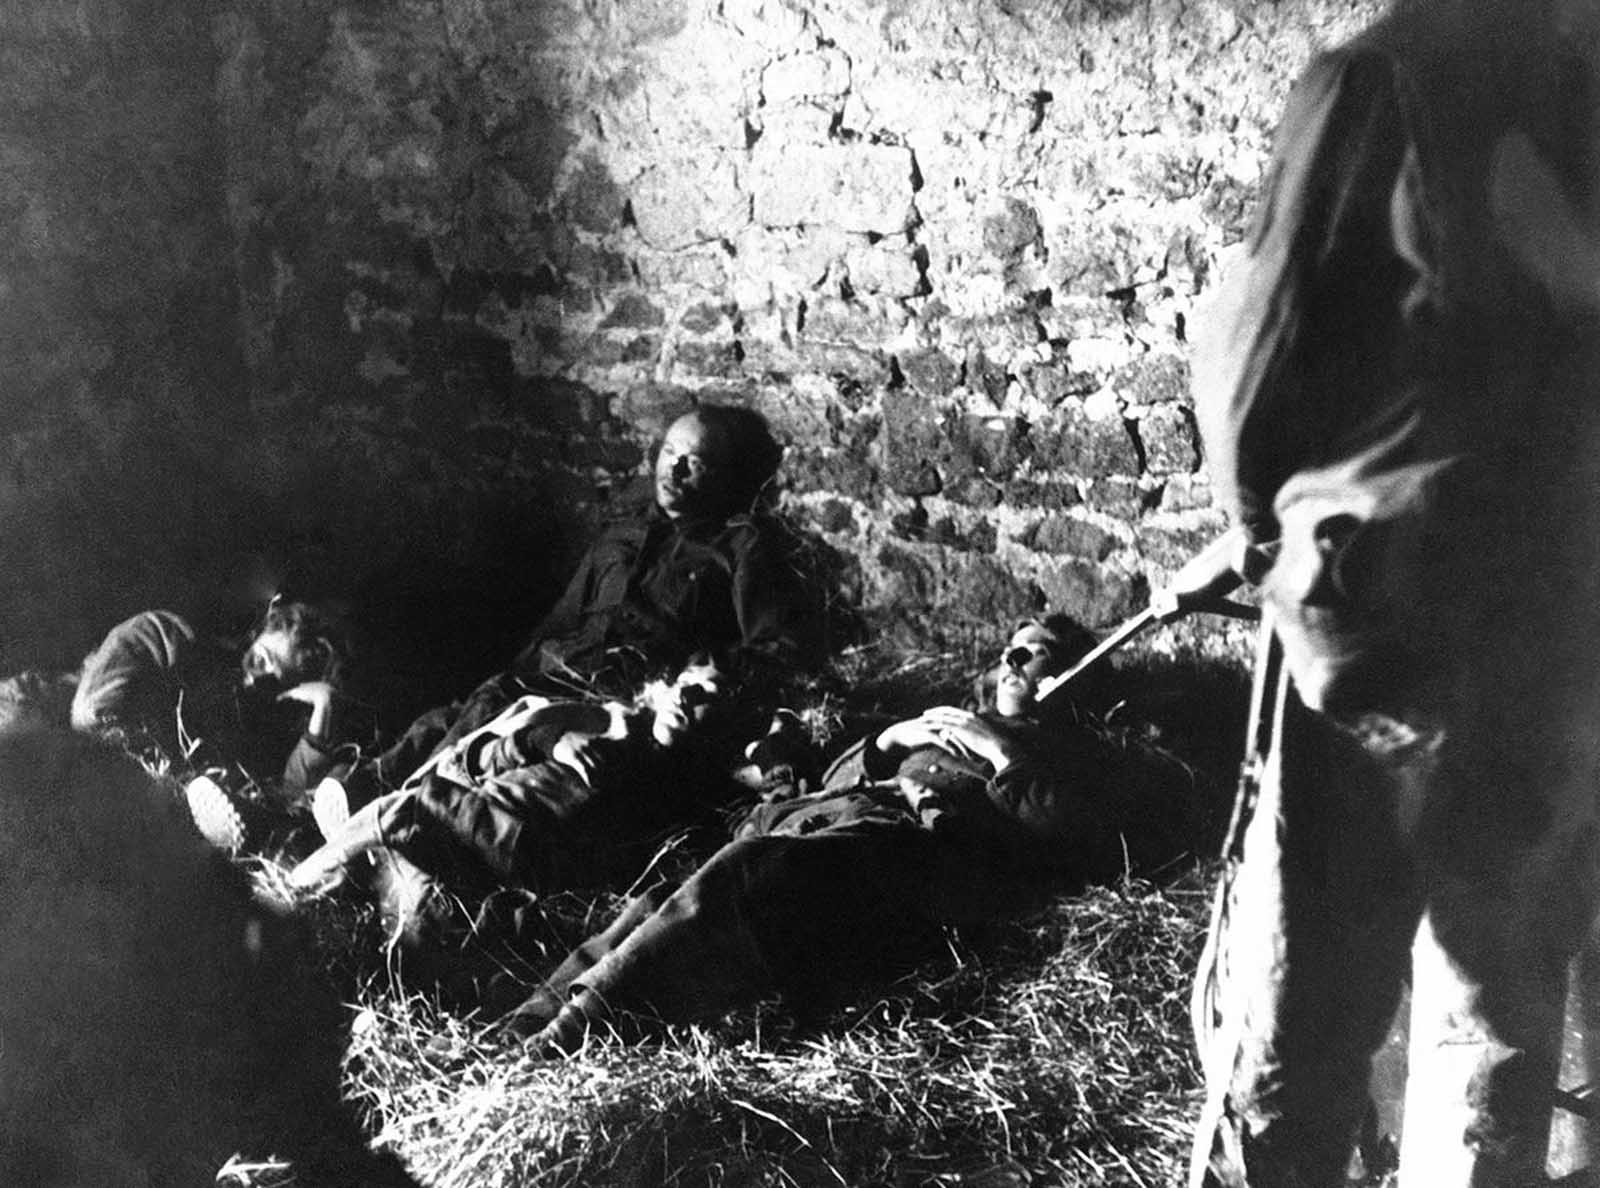 These five Germans were wounded and left without food or water for three days, hiding in a Normandy farmhouse waiting for a chance to surrender. Acting on information received from a French couple, U.S. soldiers went to the barn only to be attacked by snipers who seemed determined upon preventing their comrades from falling into Allied hands. After a skirmish, the snipers were dealt with and the wounded Germans taken captive, in France on June 14, 1944.